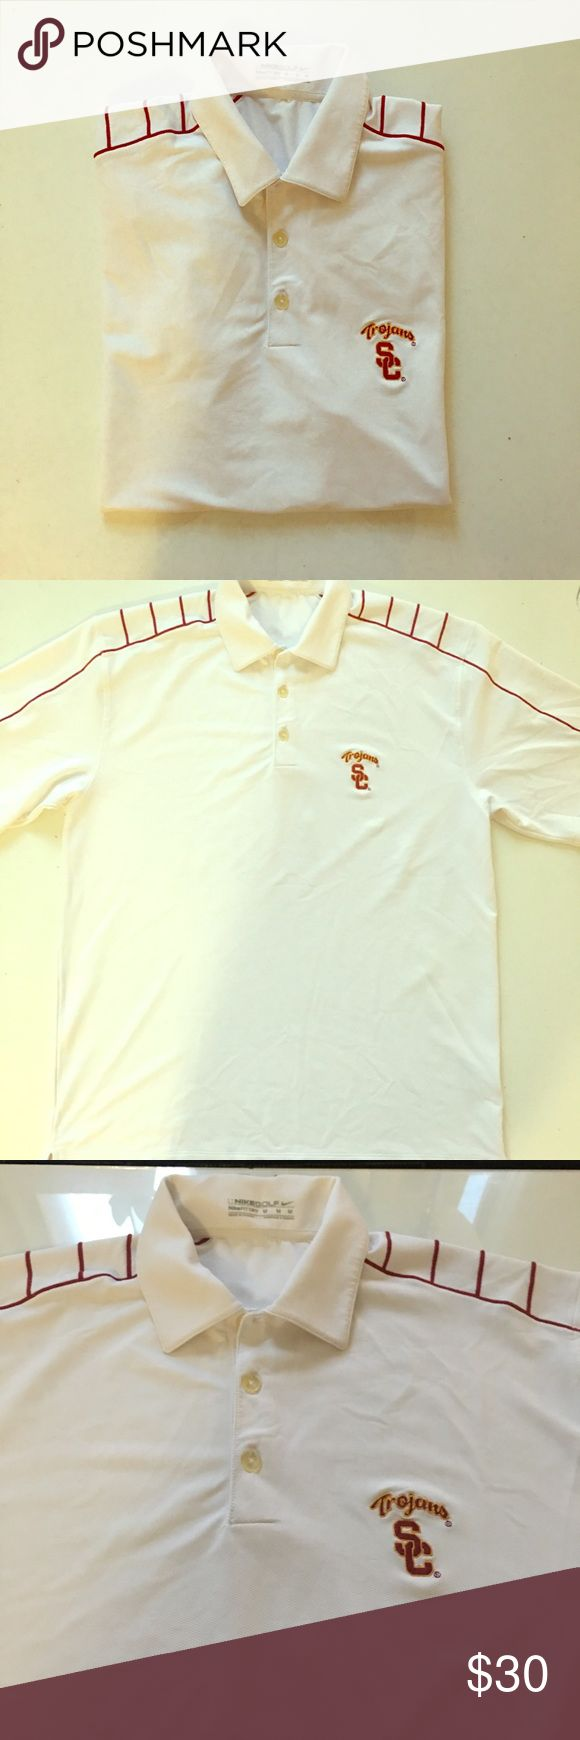 """Nike Golf """"Fit Dry"""" Men's USC Polo Shirt Medium Pristine condition, classic Trojan white and red polo shirt made specifically for the golf course. Nike """"Fit Dry"""" technology will keep you cool in the hottest conditions. USC insignia embroidered on the chest. Size medium. Nike Golf Shirts Polos"""